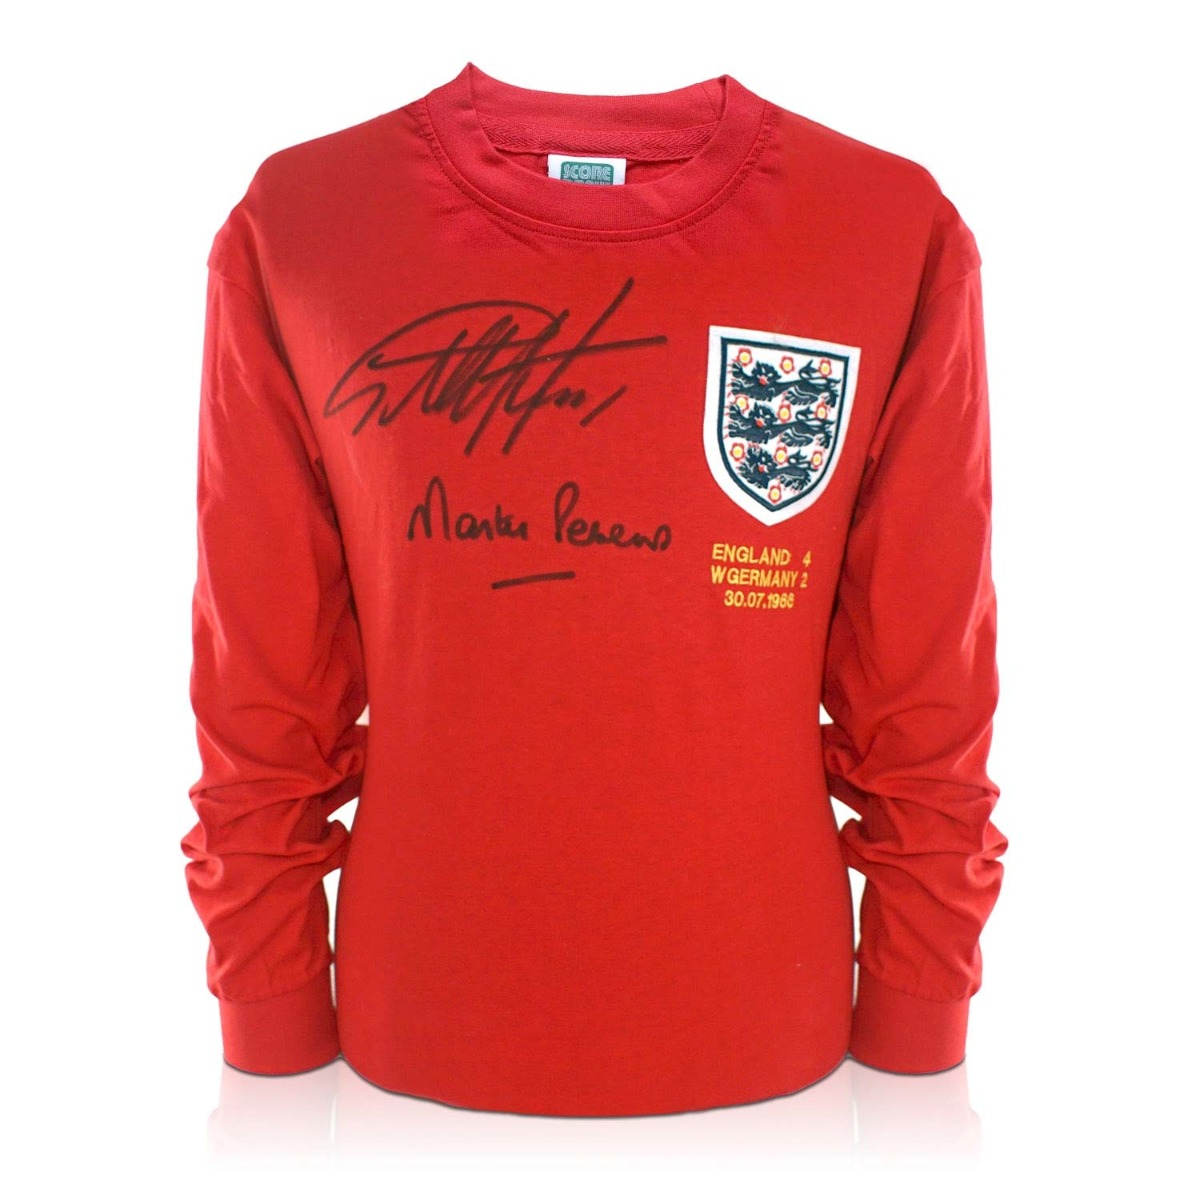 Sir Geoff Hurst And Martin Peters Signed England Football Shirt